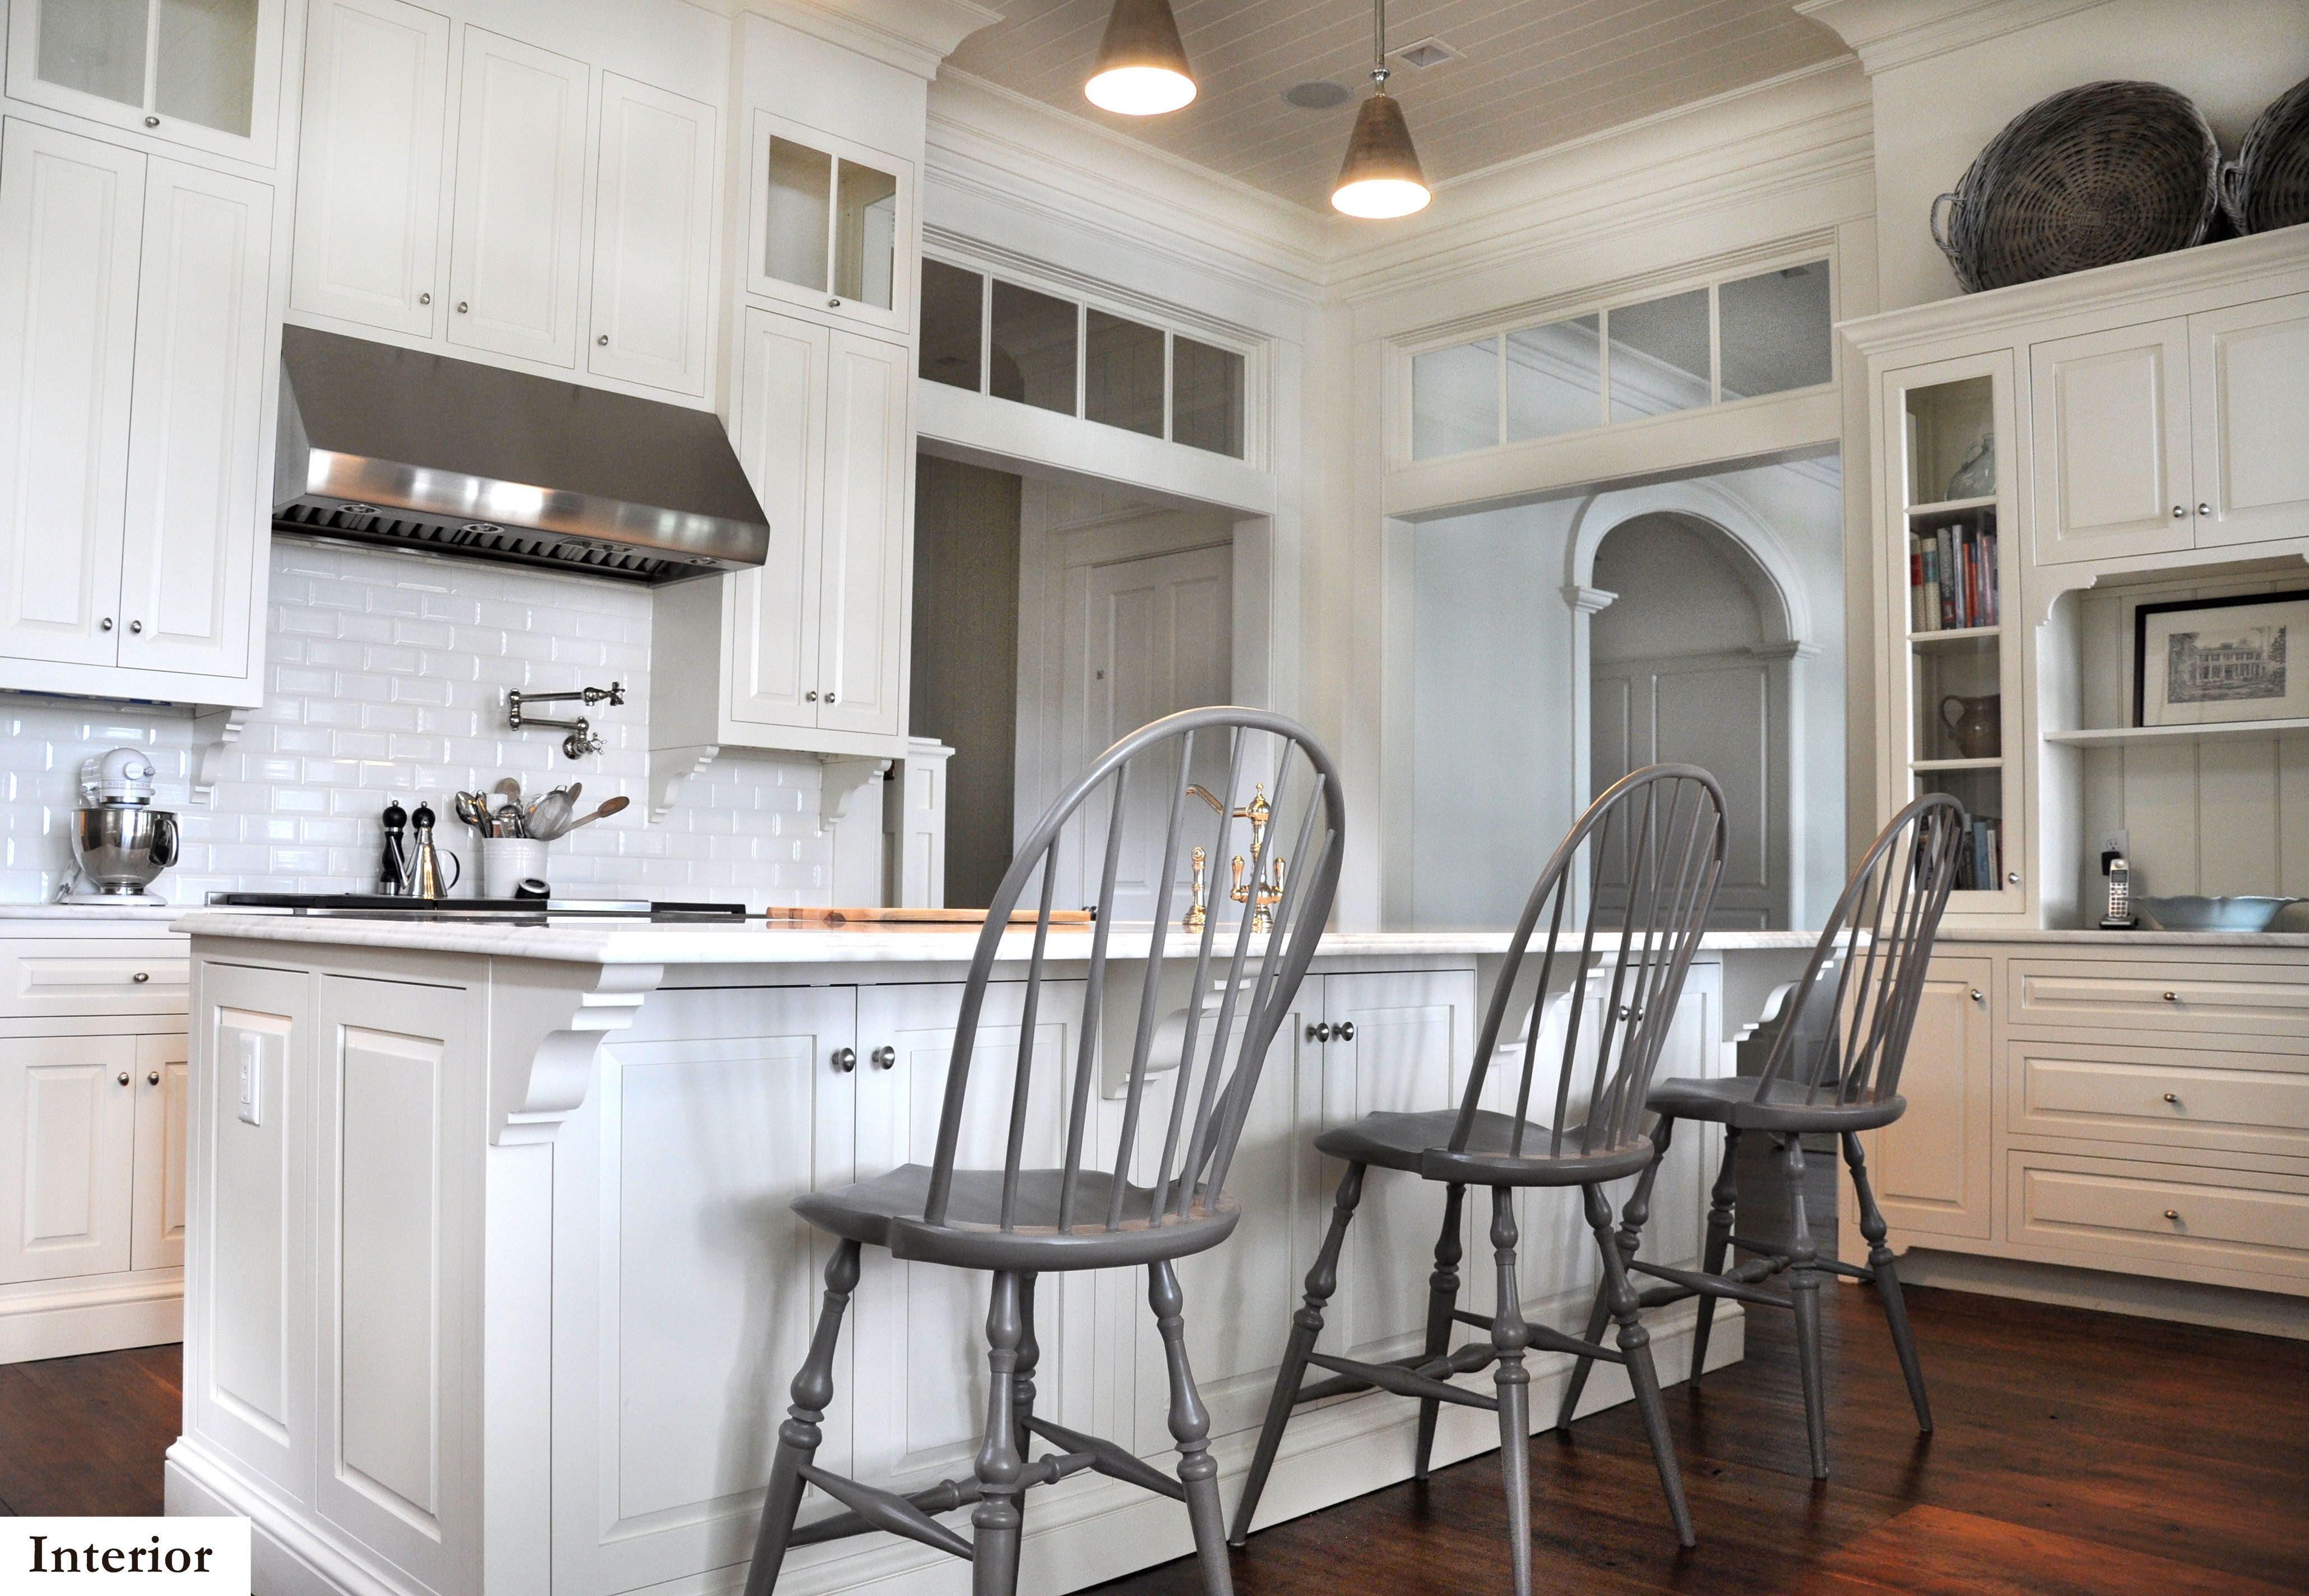 white kitchen | k i t c h e n | Pinterest | Palmetto bluff, Kitchens ...